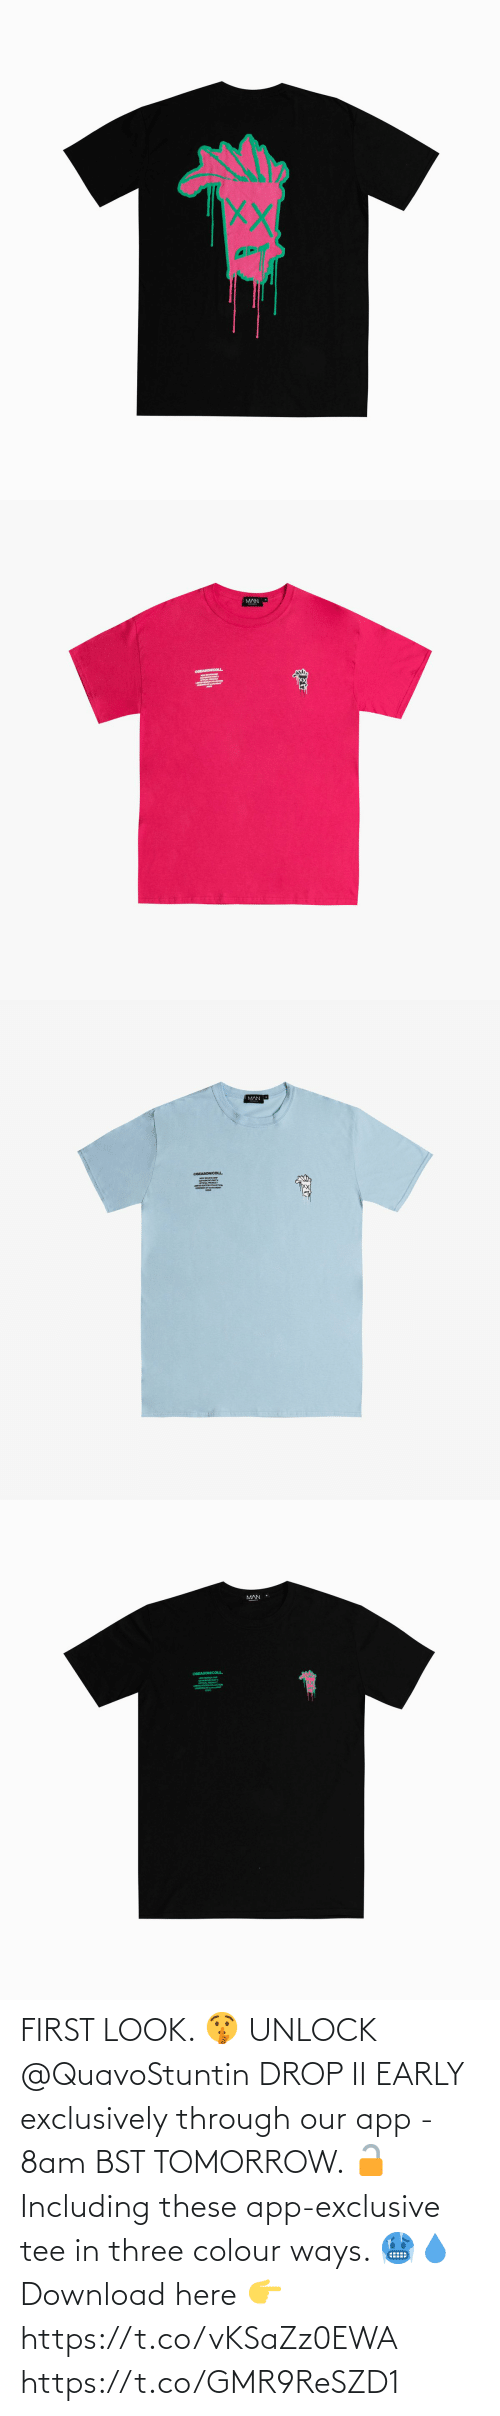 Colour: FIRST LOOK. 🤫  UNLOCK @QuavoStuntin DROP II EARLY exclusively through our app - 8am BST TOMORROW. 🔓  Including these app-exclusive tee in three colour ways. 🥶💧  Download here 👉 https://t.co/vKSaZz0EWA https://t.co/GMR9ReSZD1